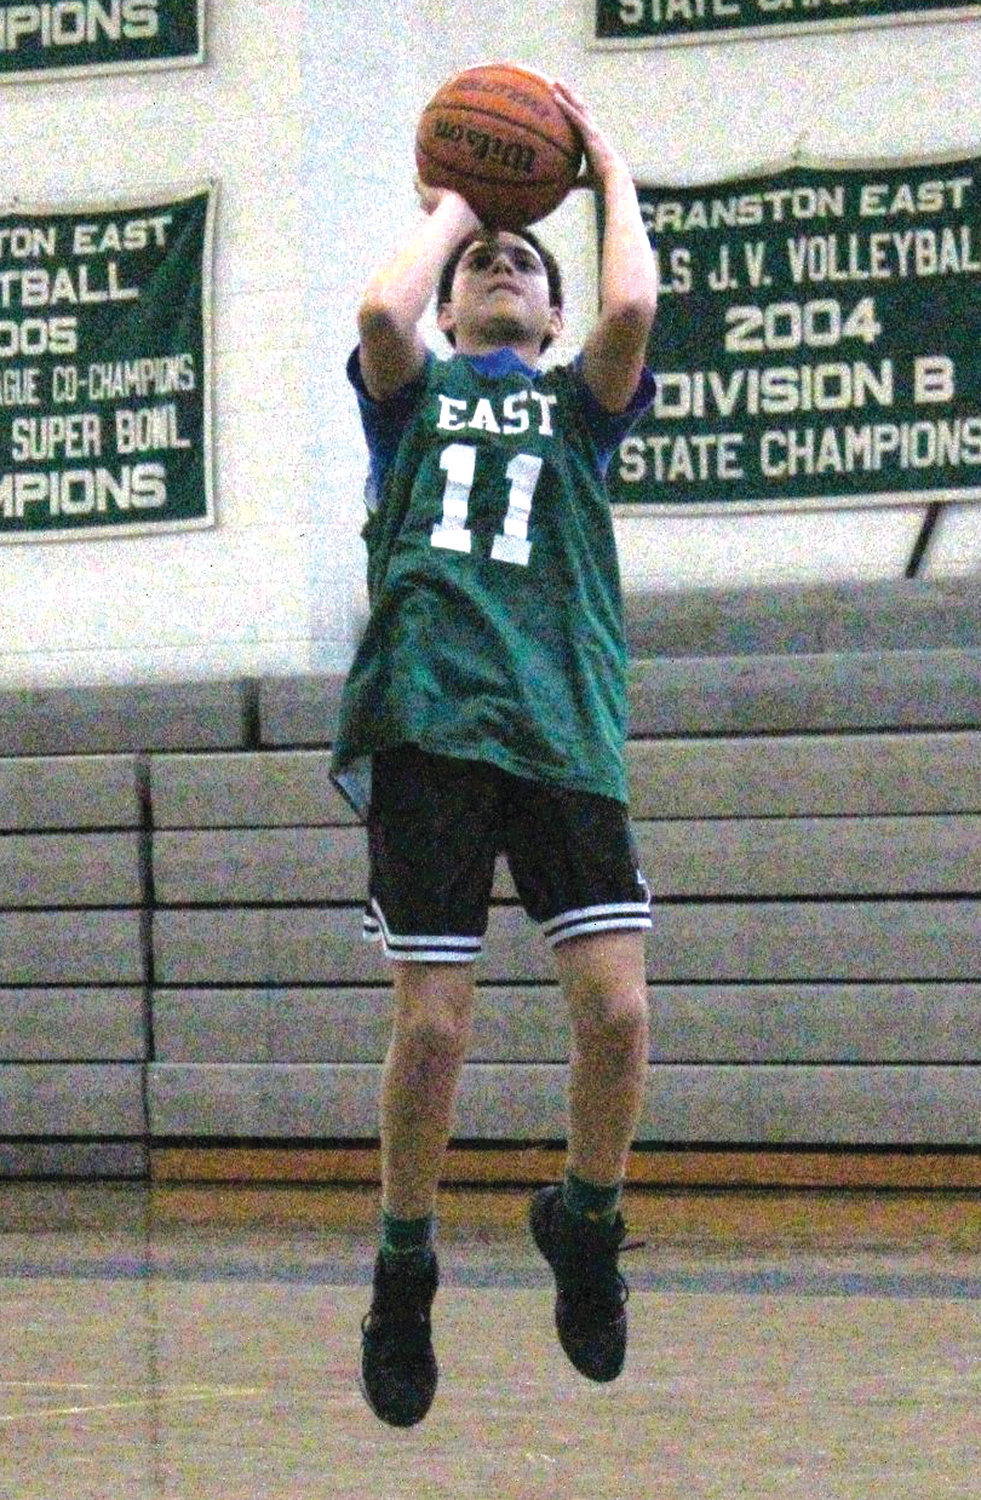 JUMP SHOT: Cranston East's Joel Velasquez puts up a shot at a recent practice. Velasquez is set to be a key player for the Bolts.